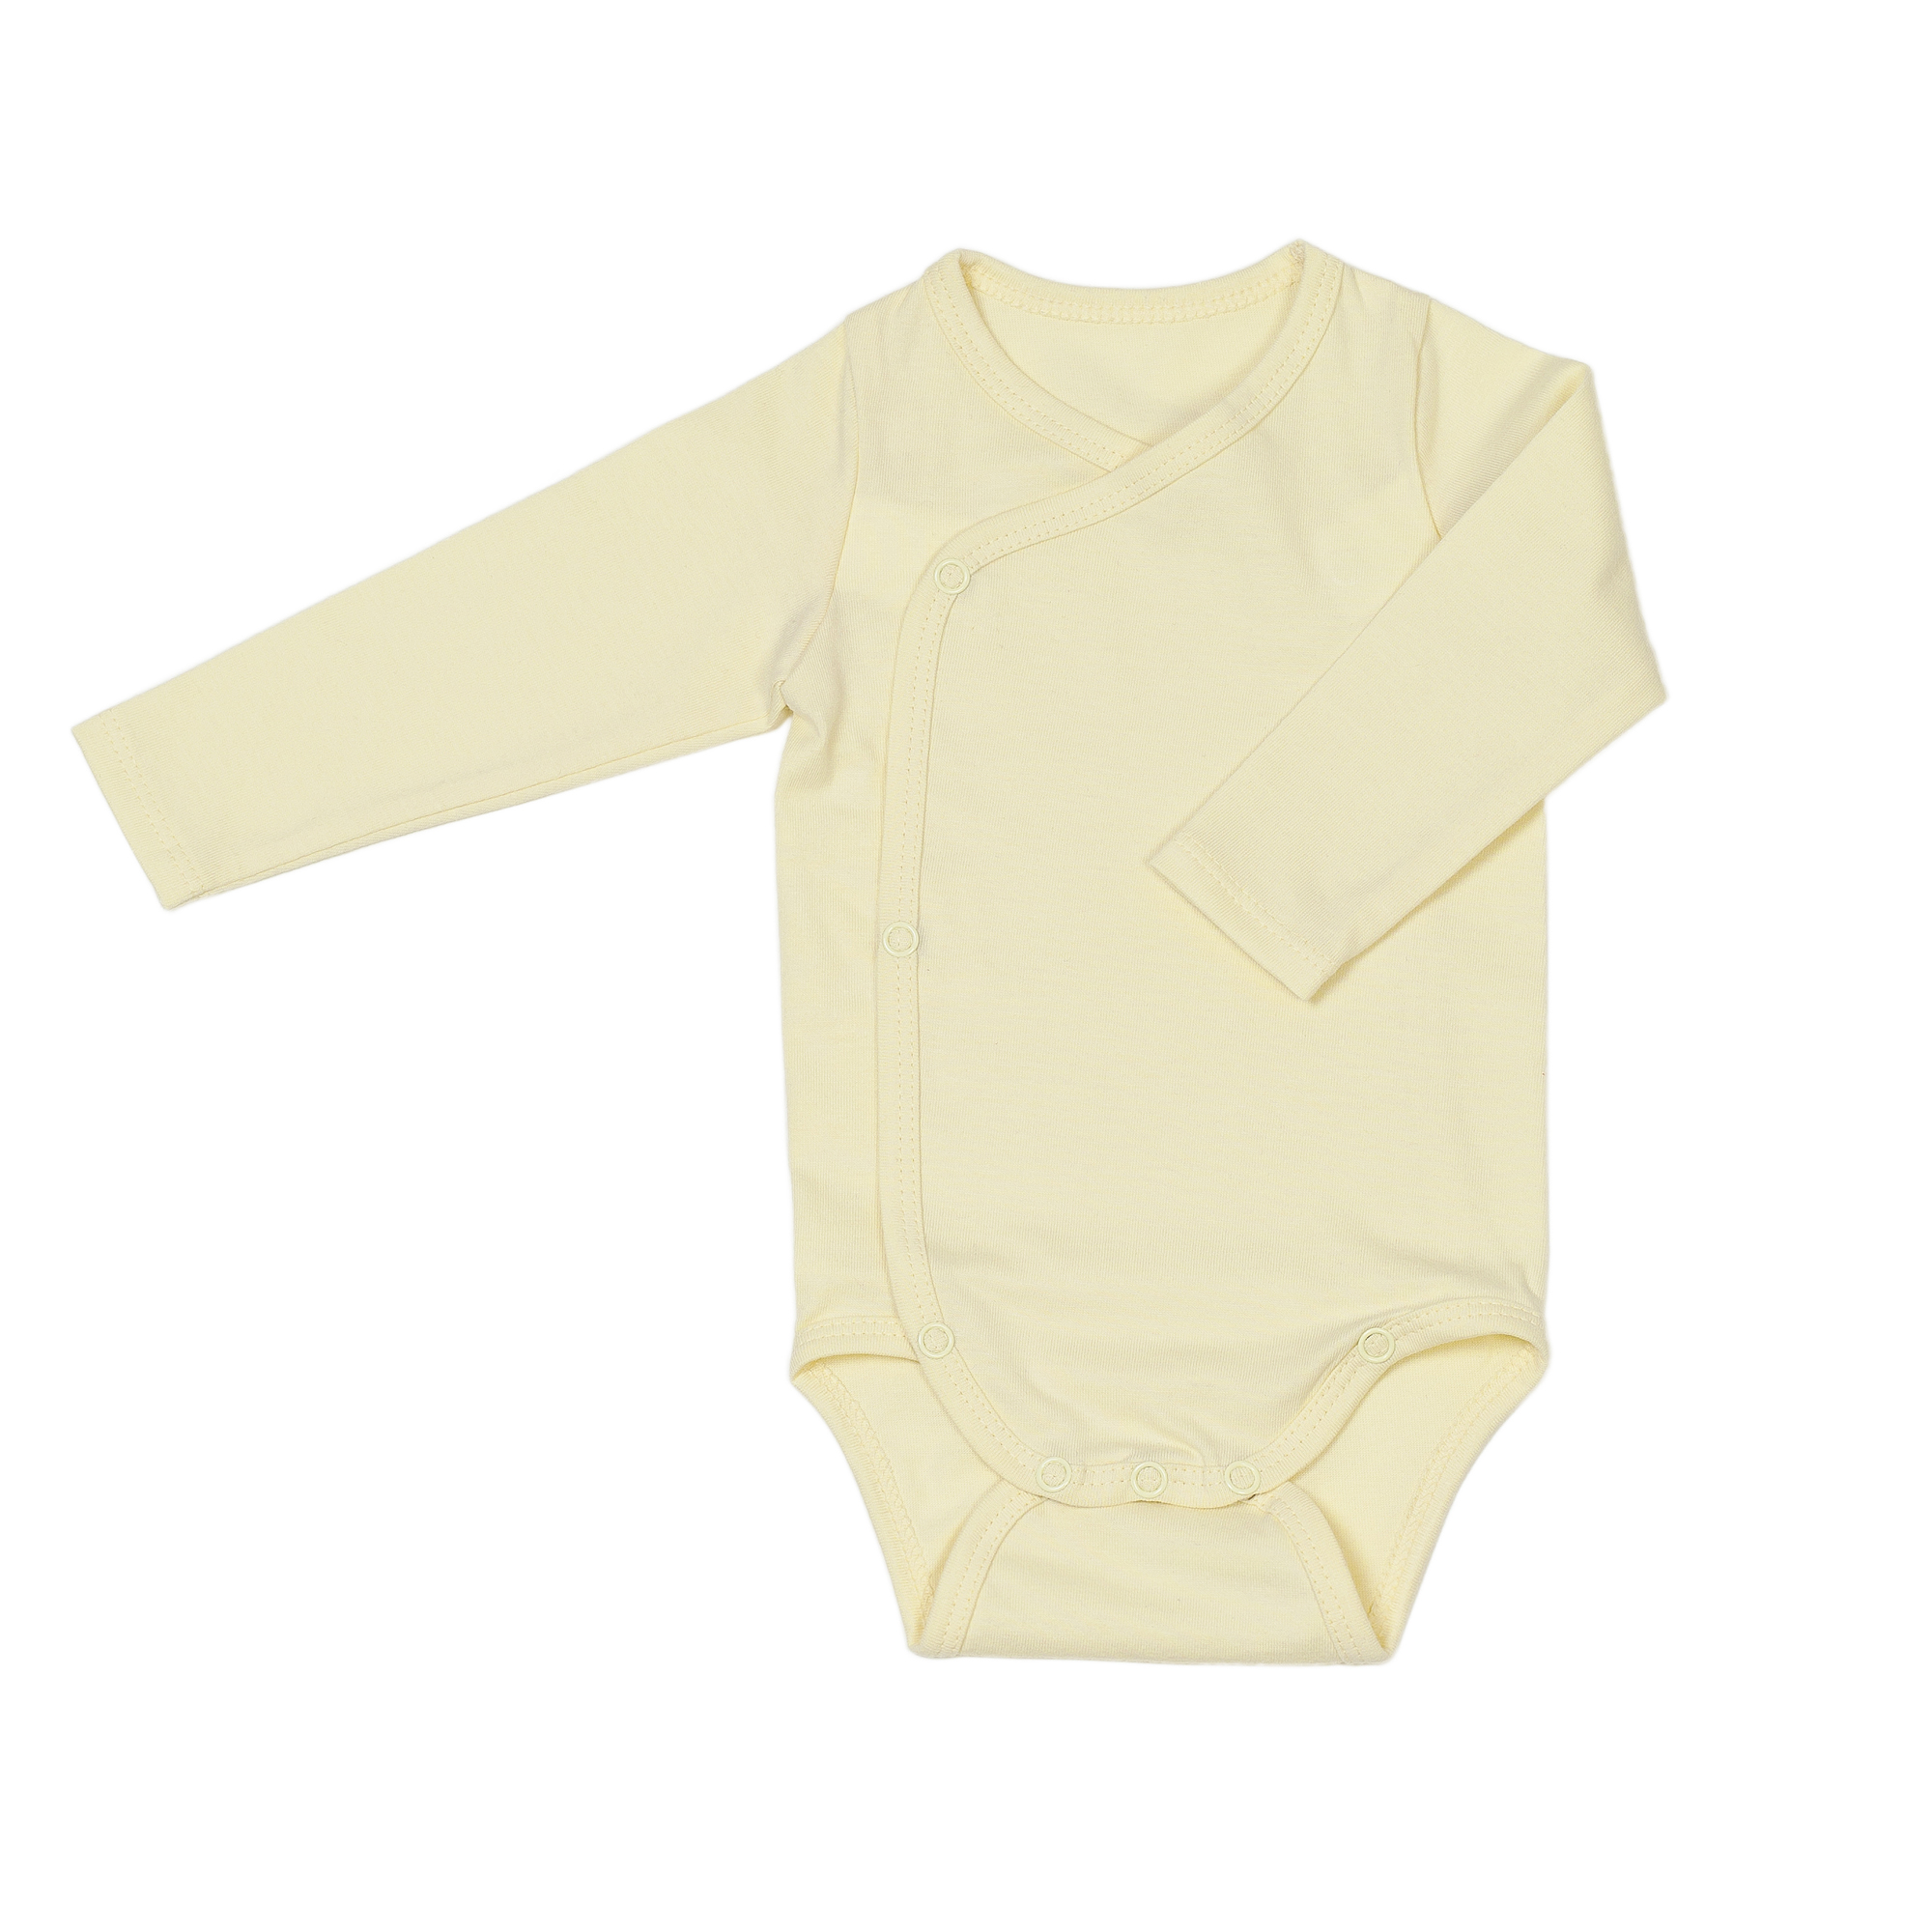 Newborn organic cotton baby bodysuit yellow